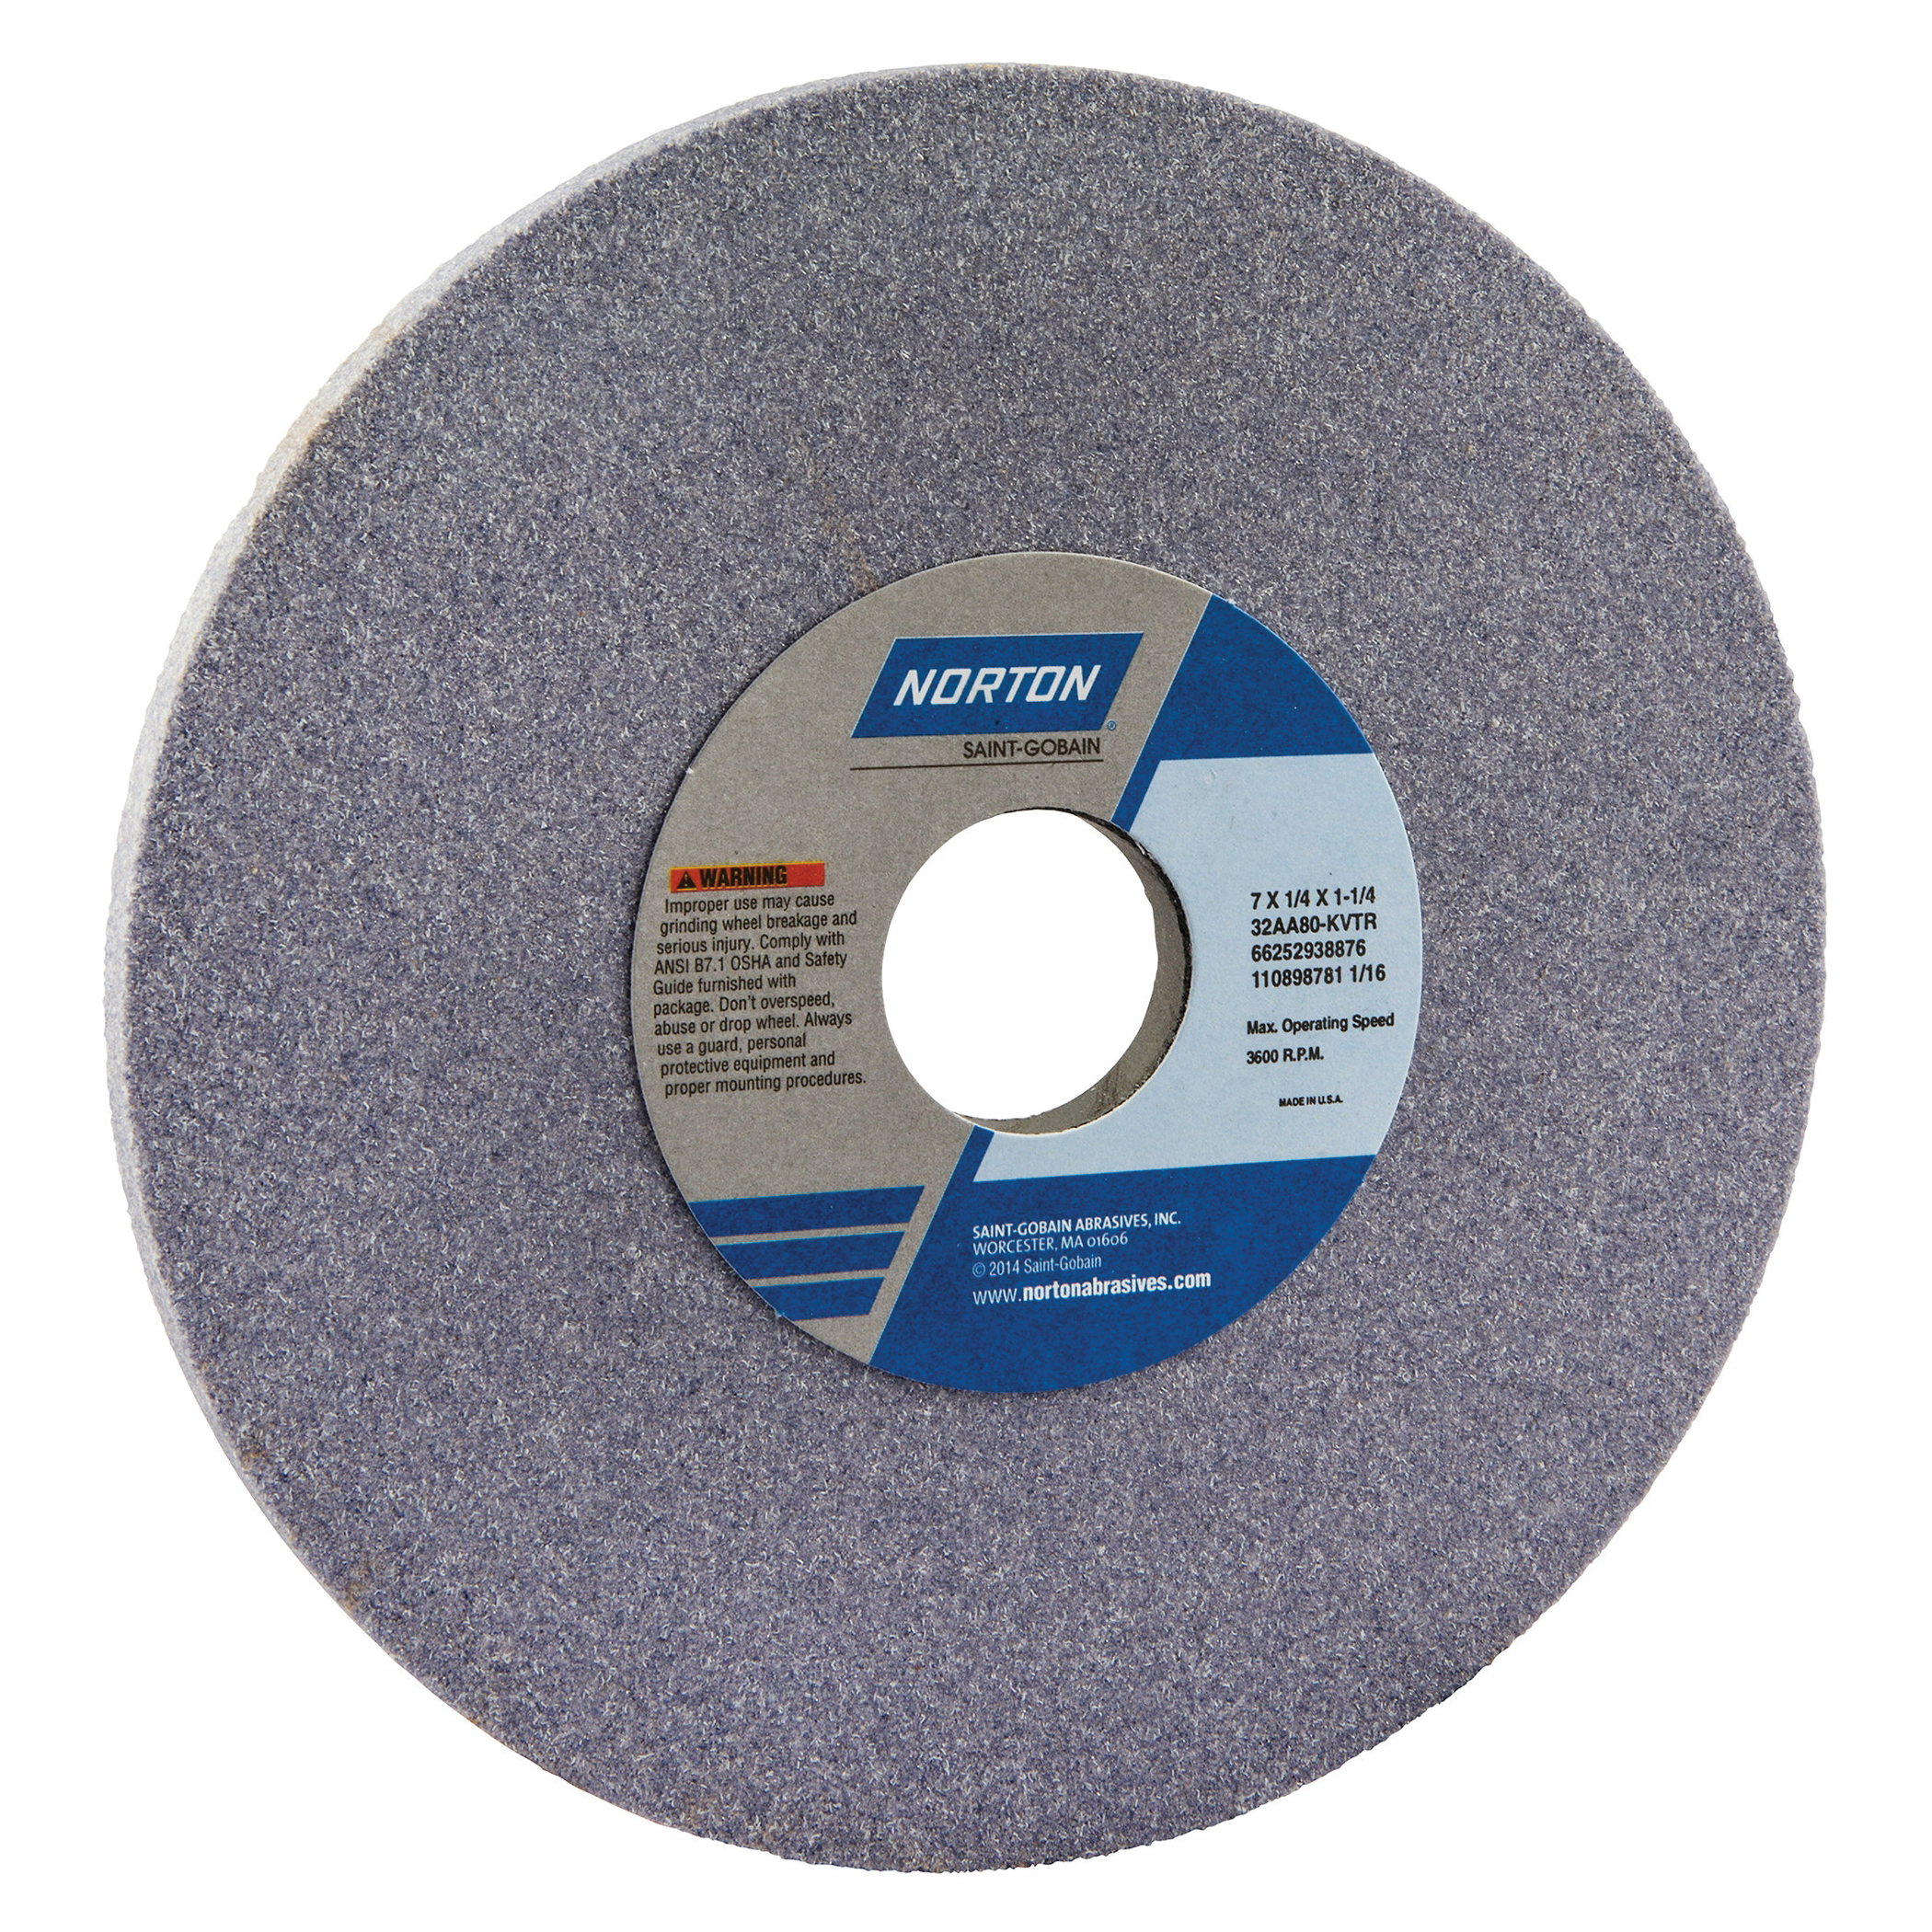 Norton® 66252938876 32AA Straight Toolroom Wheel, 7 in Dia x 1/4 in THK, 1-1/4 in Center Hole, 80 Grit, Aluminum Oxide Abrasive